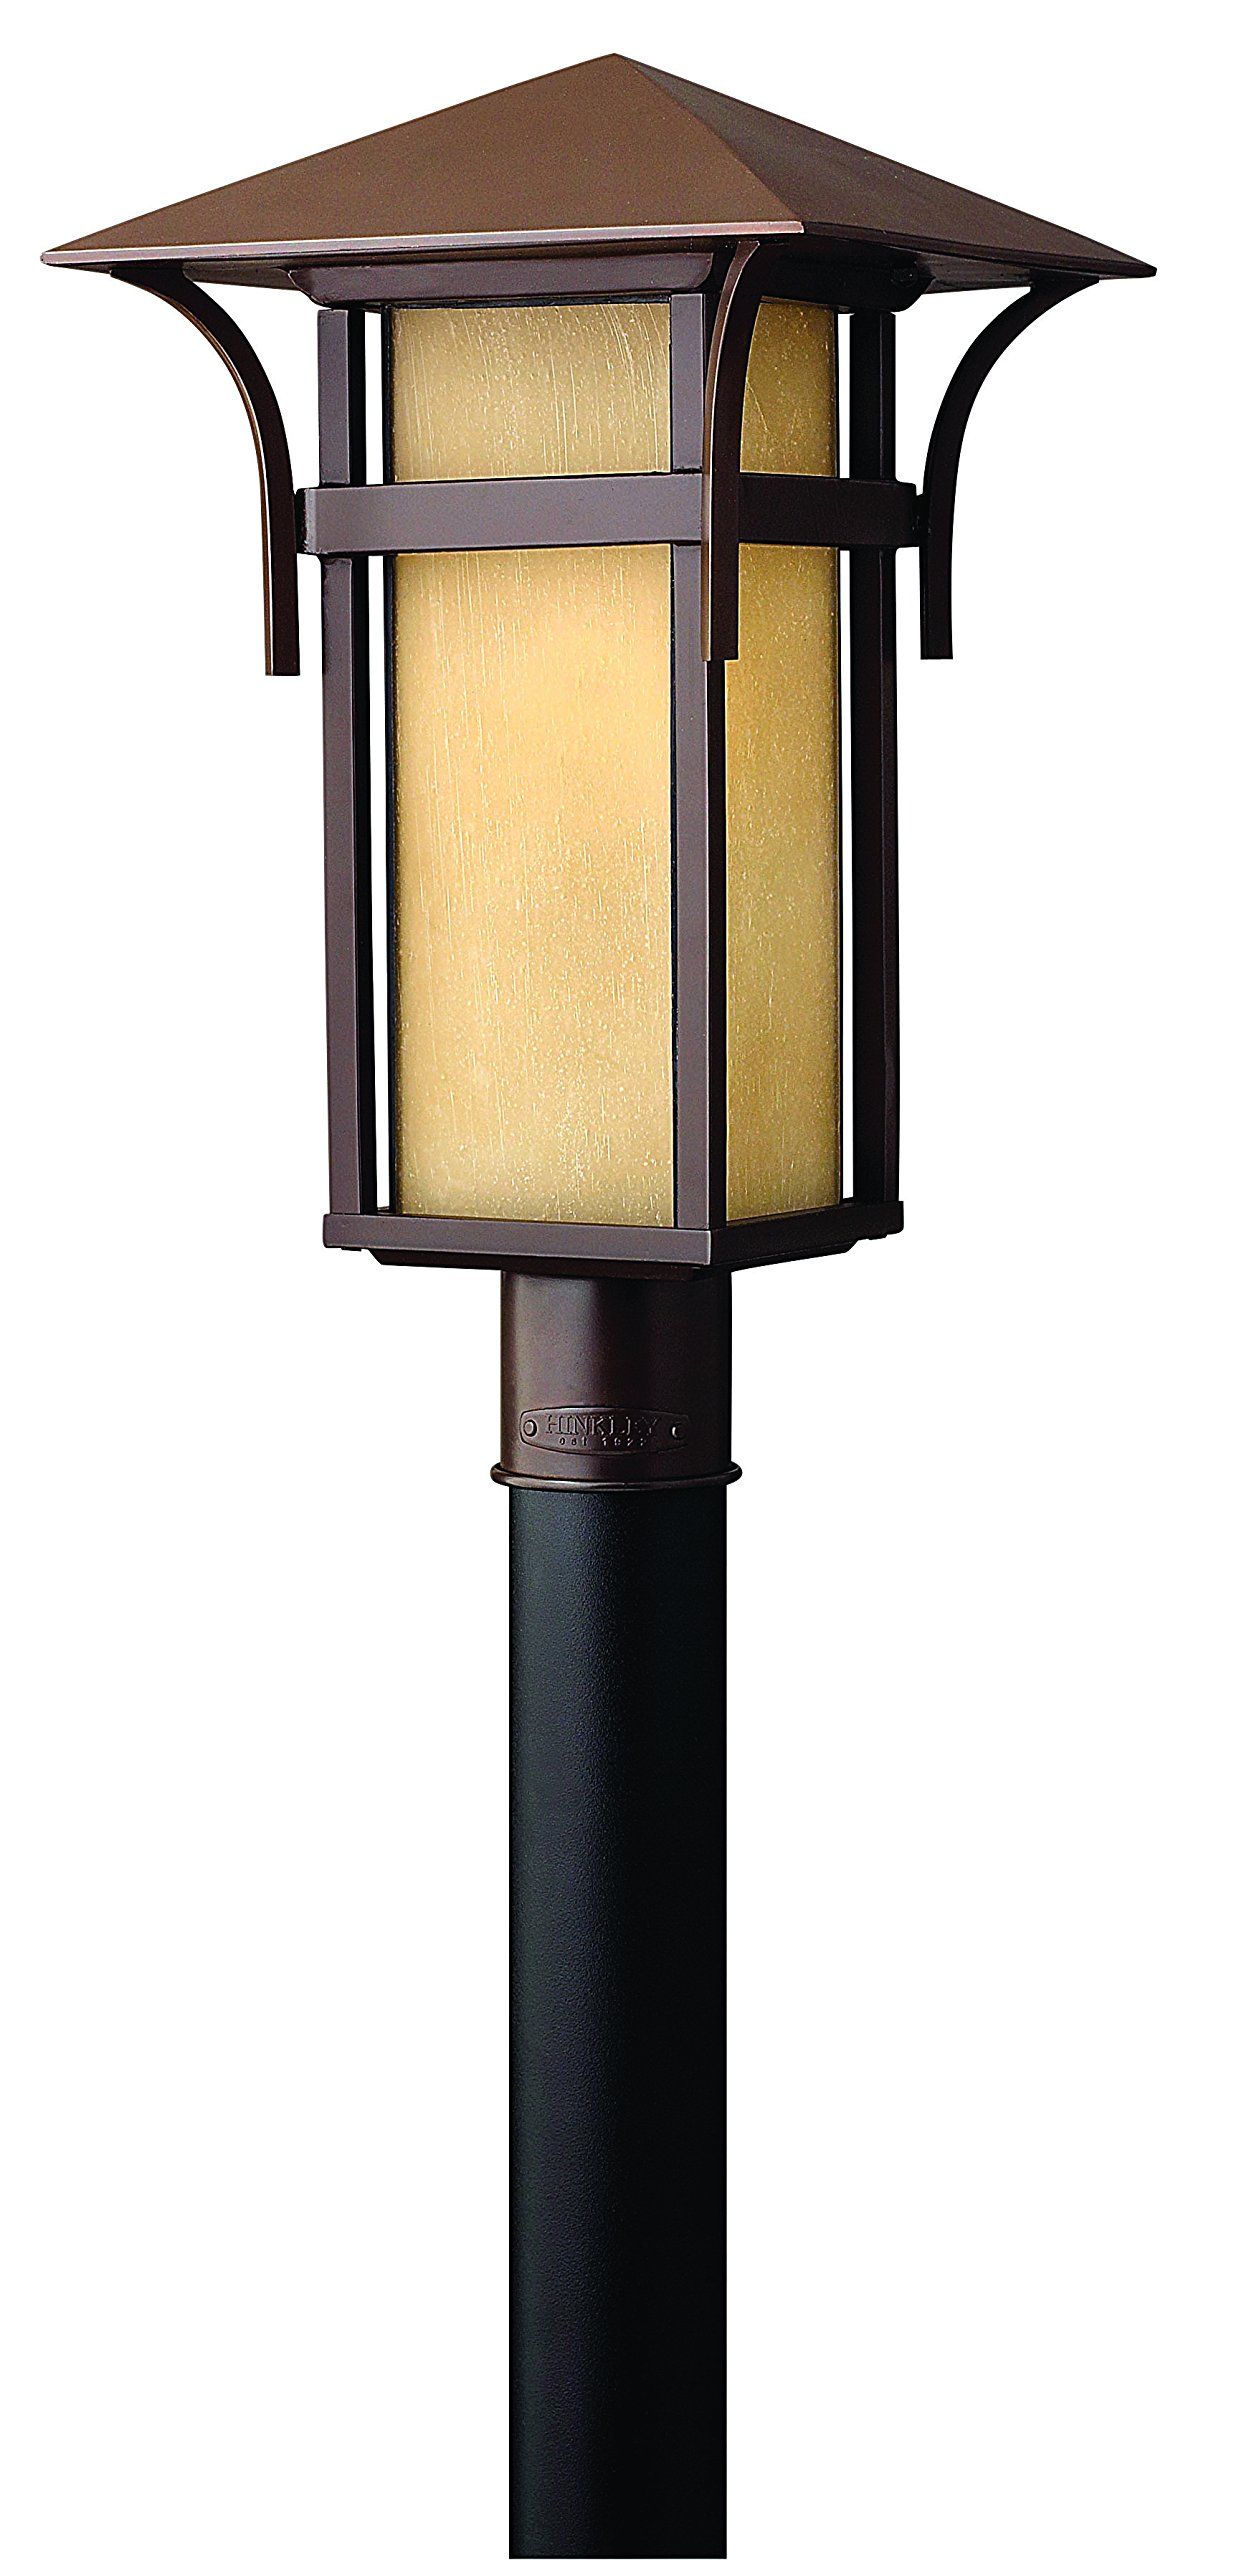 Hinkley 2571AR Transitional One Light Post Top/ Pier Mount from Harbor collection in Bronze/Darkfinish, by Hinkley